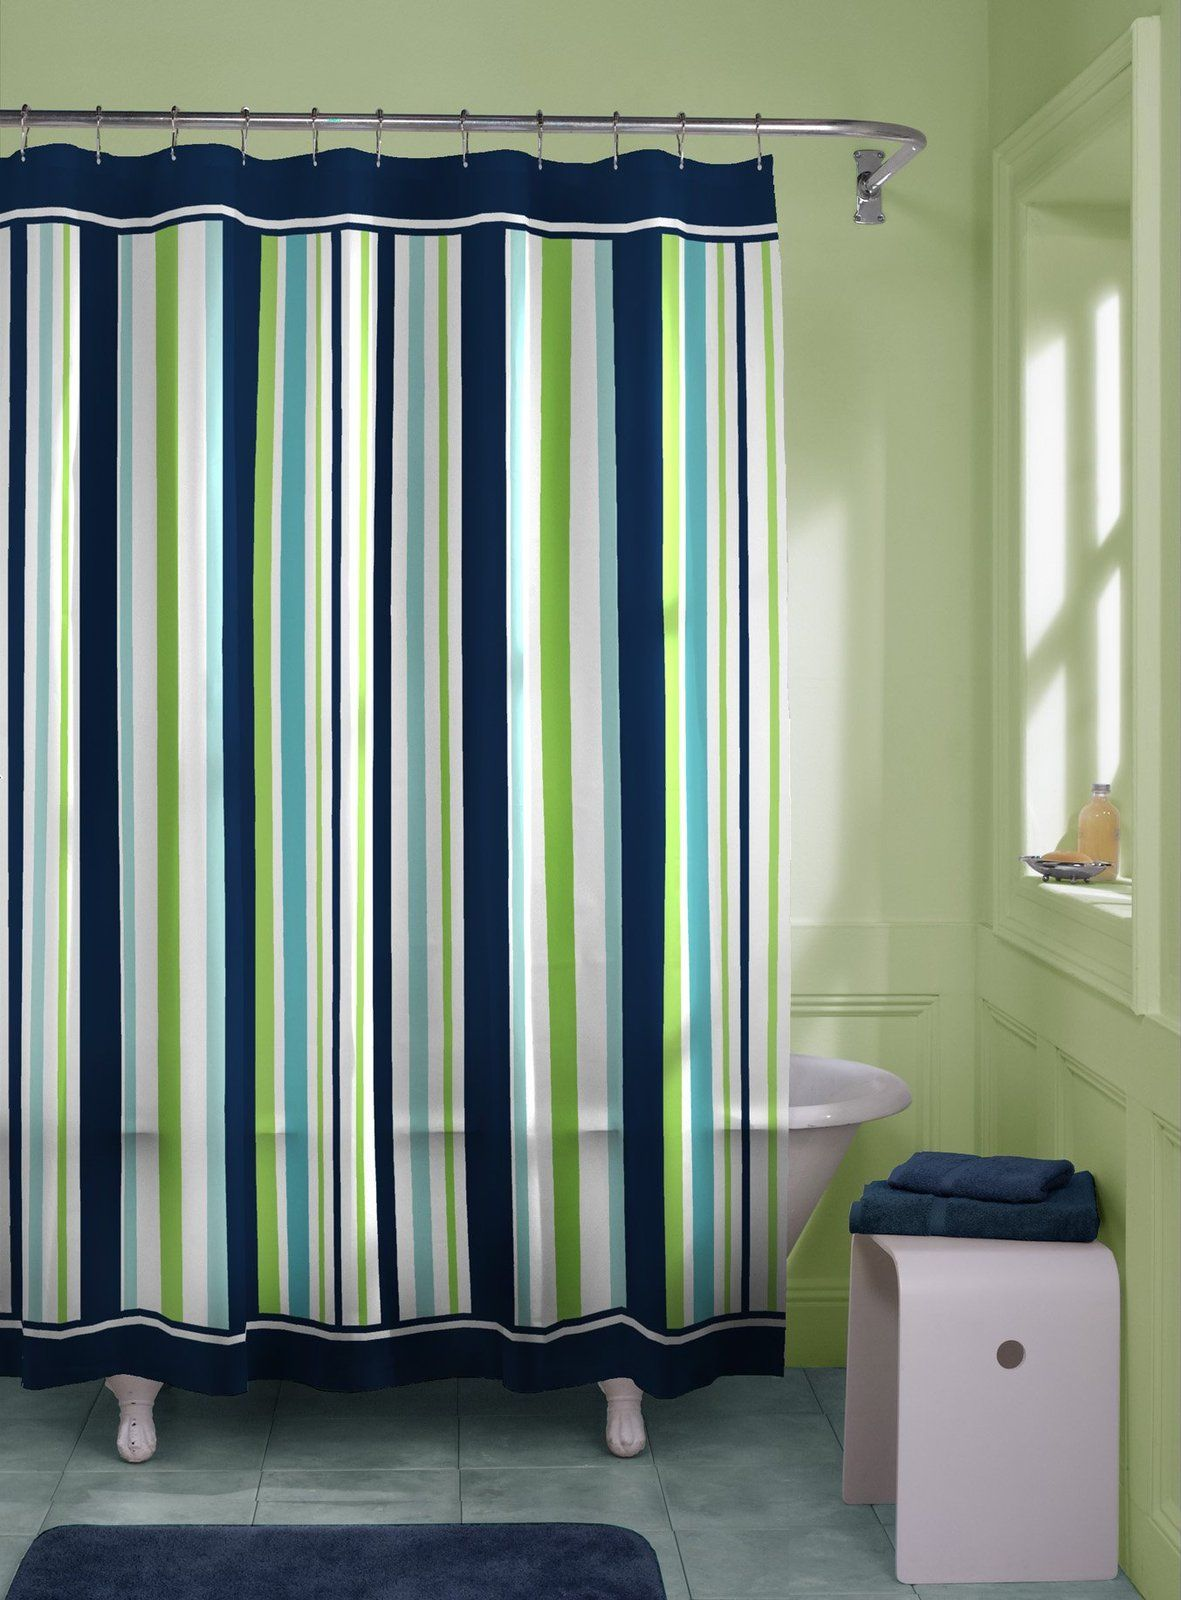 12 Alternatives What Size Is A Standard Shower Curtain Should Be